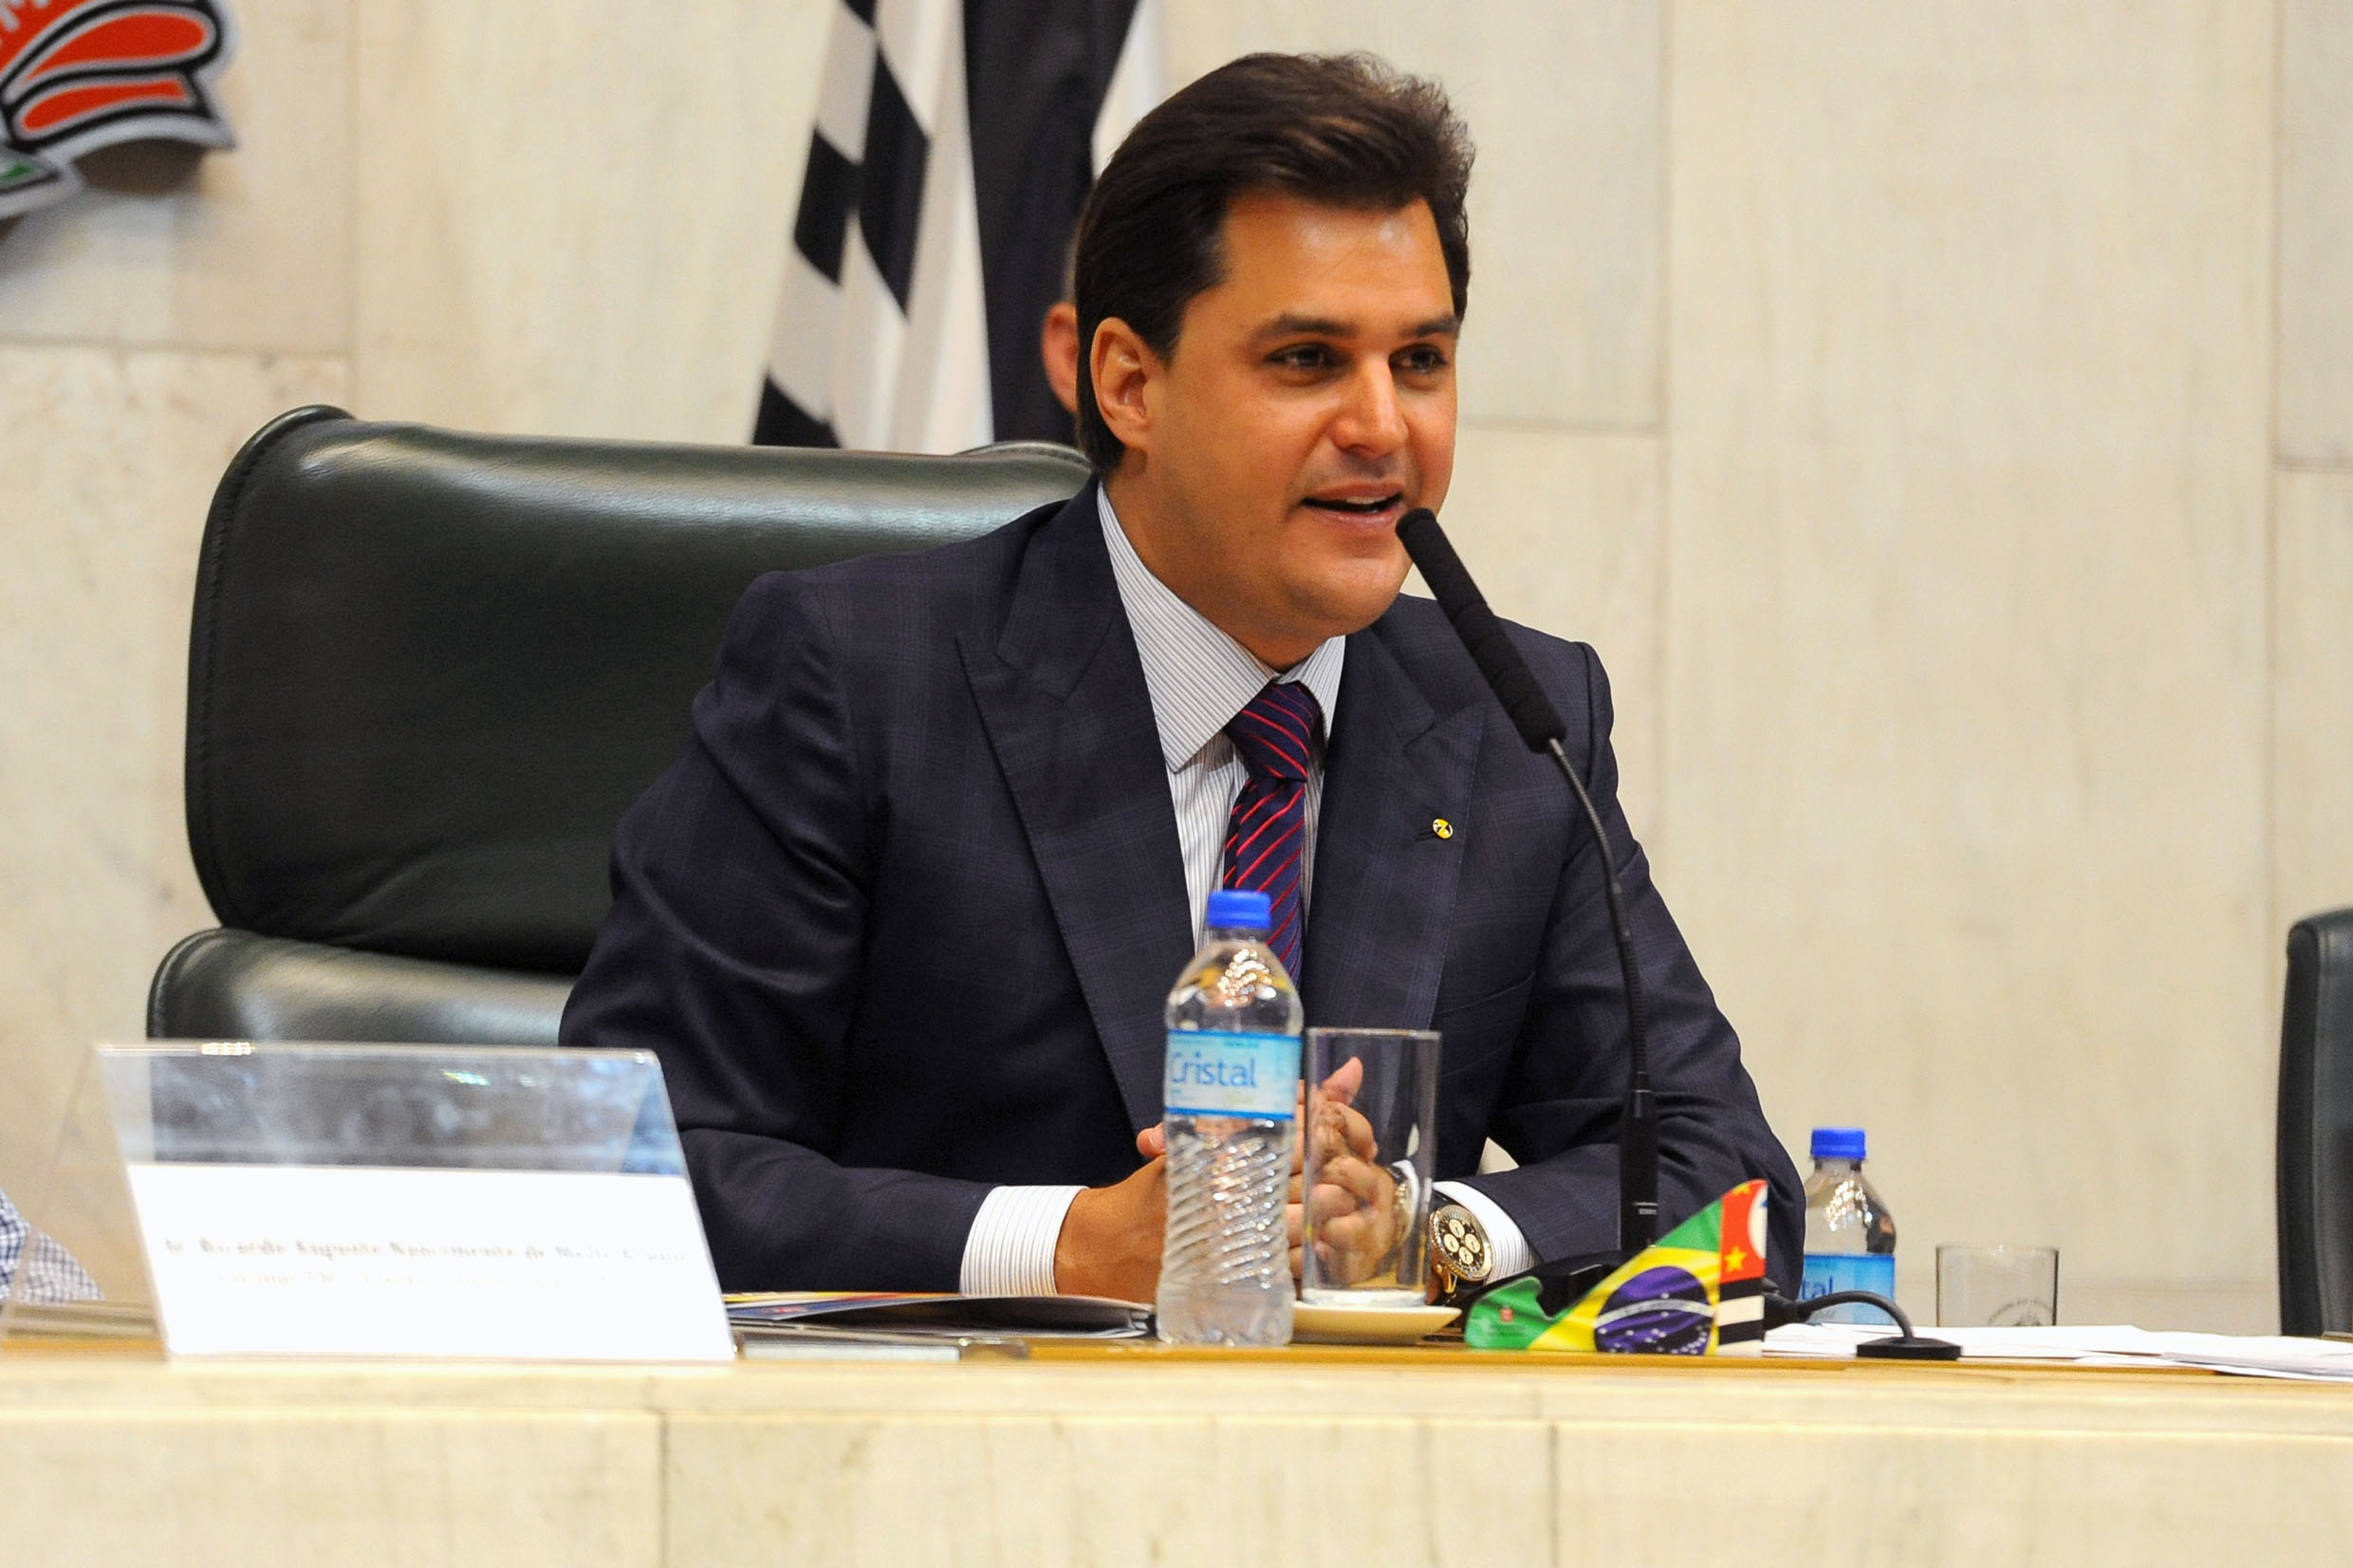 Frederico d' Avila<a style='float:right' href='https://www3.al.sp.gov.br/repositorio/noticia/N-12-2019/fg244869.jpg' target=_blank><img src='/_img/material-file-download-white.png' width='14px' alt='Clique para baixar a imagem'></a>